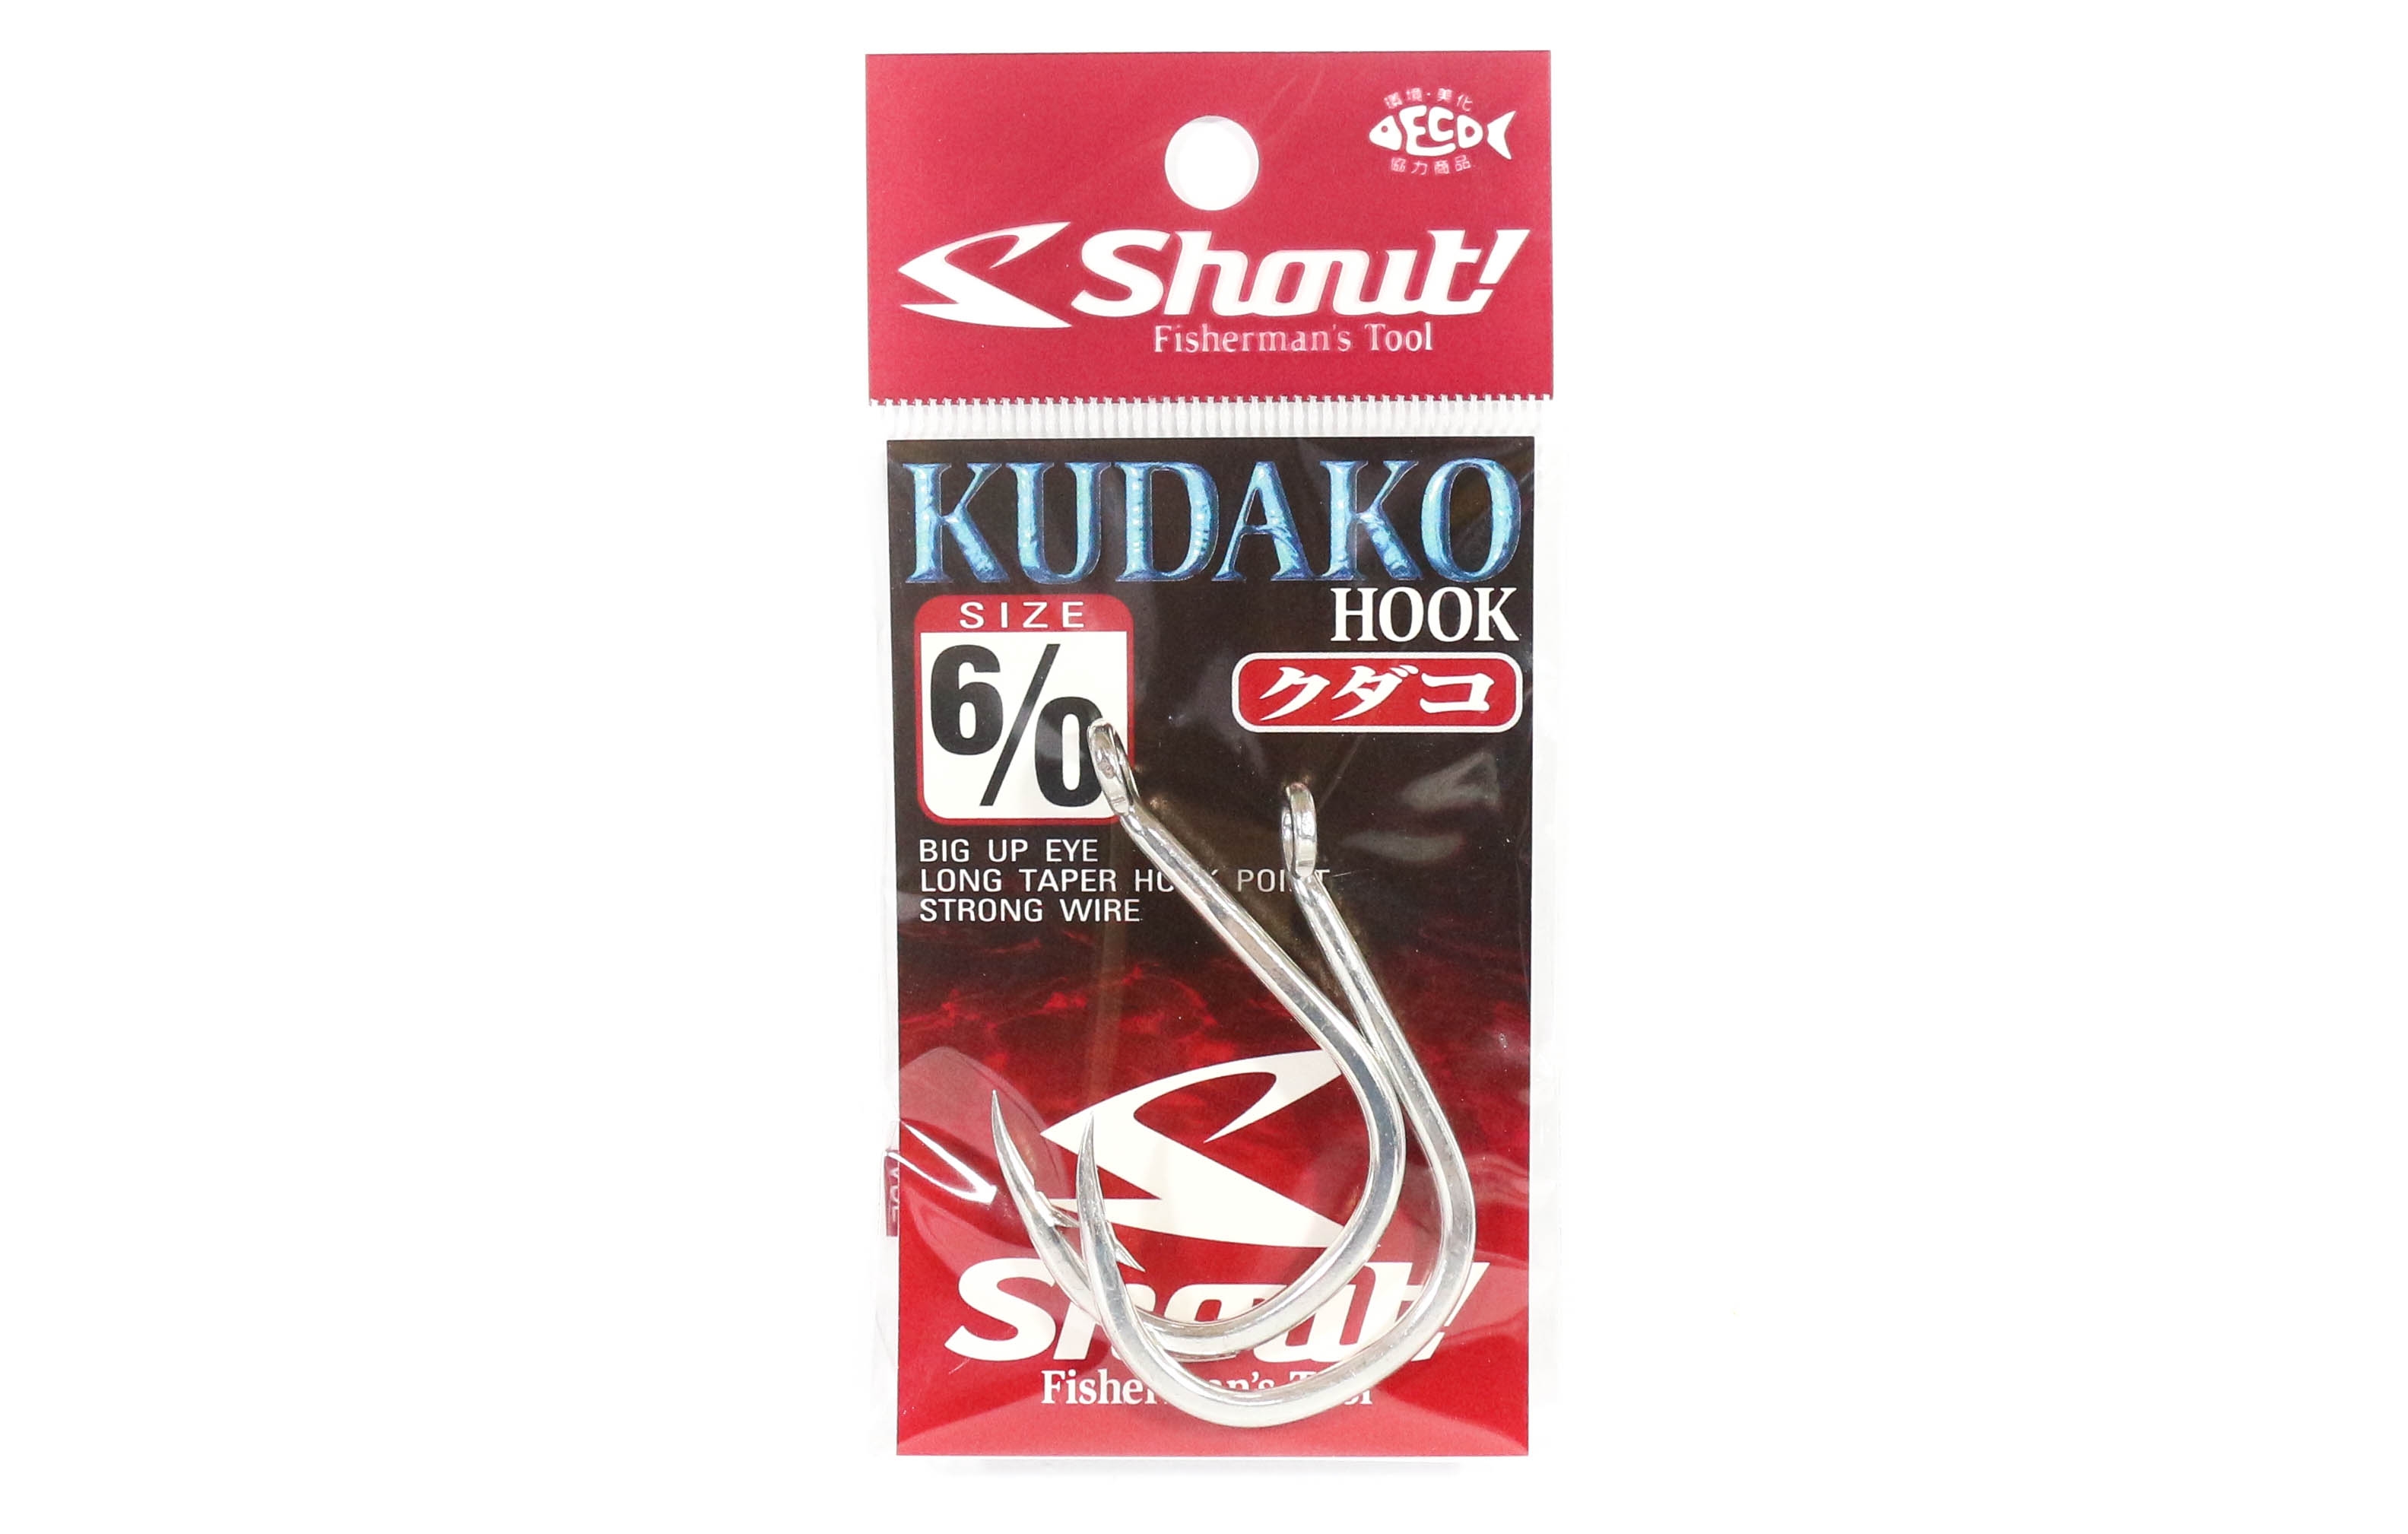 Shout 06-KH Kudako Power Jigging Single Hook Black Size 7//0 9707